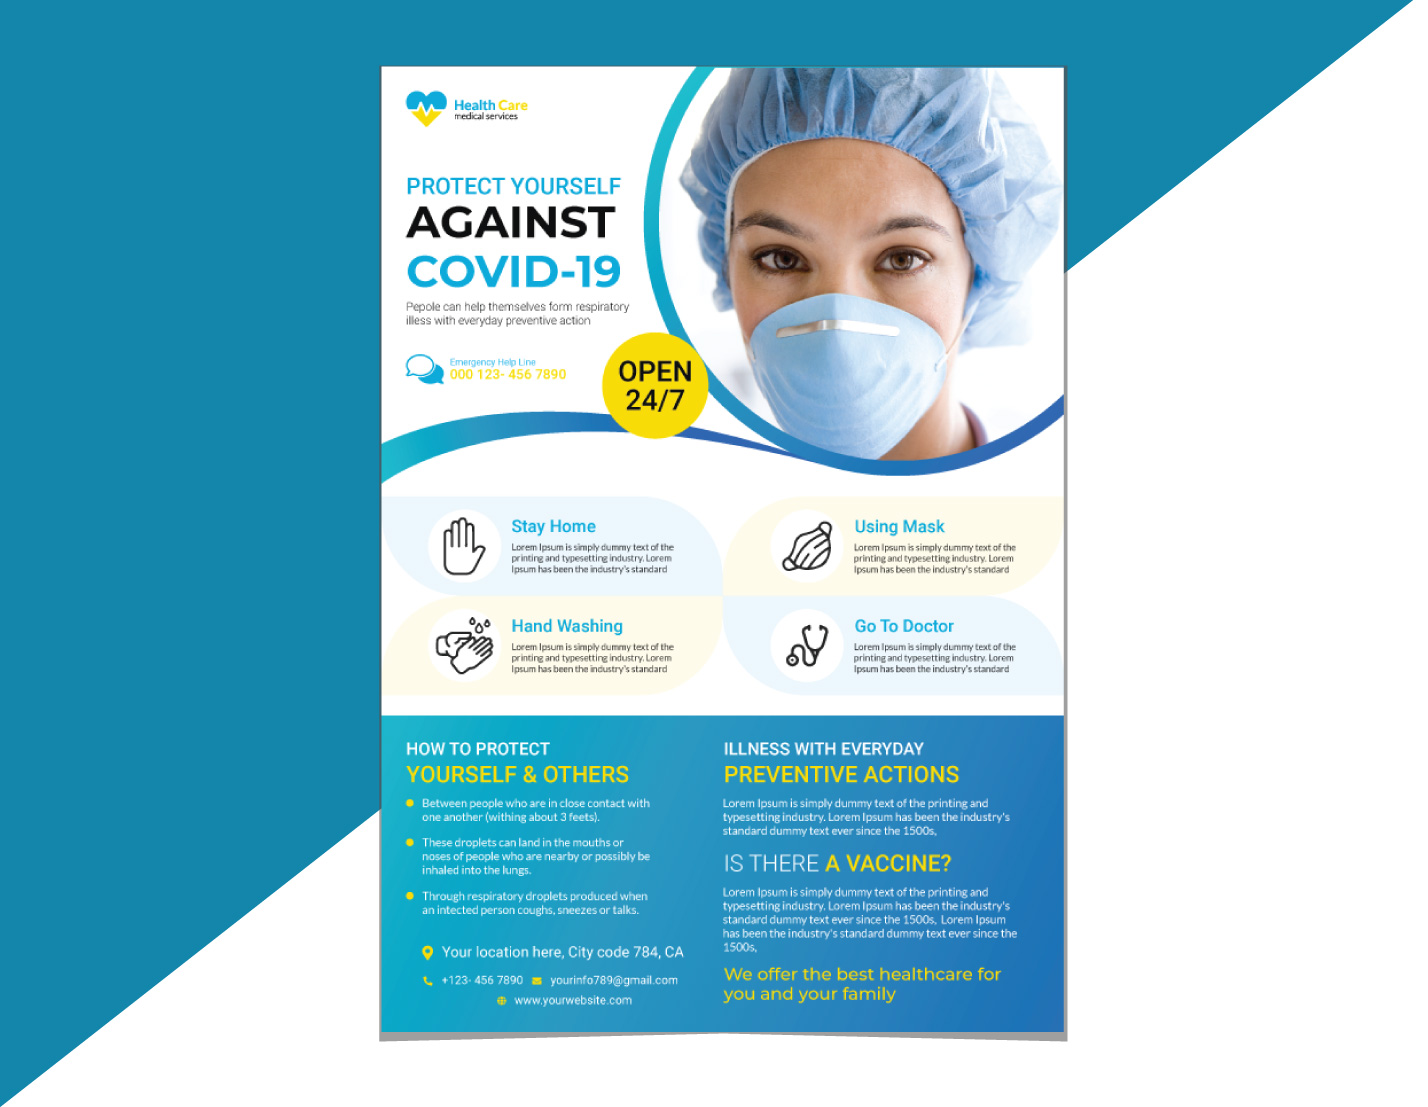 Medical Flyer Template - Blue and White Color Theme With Circular Header Design